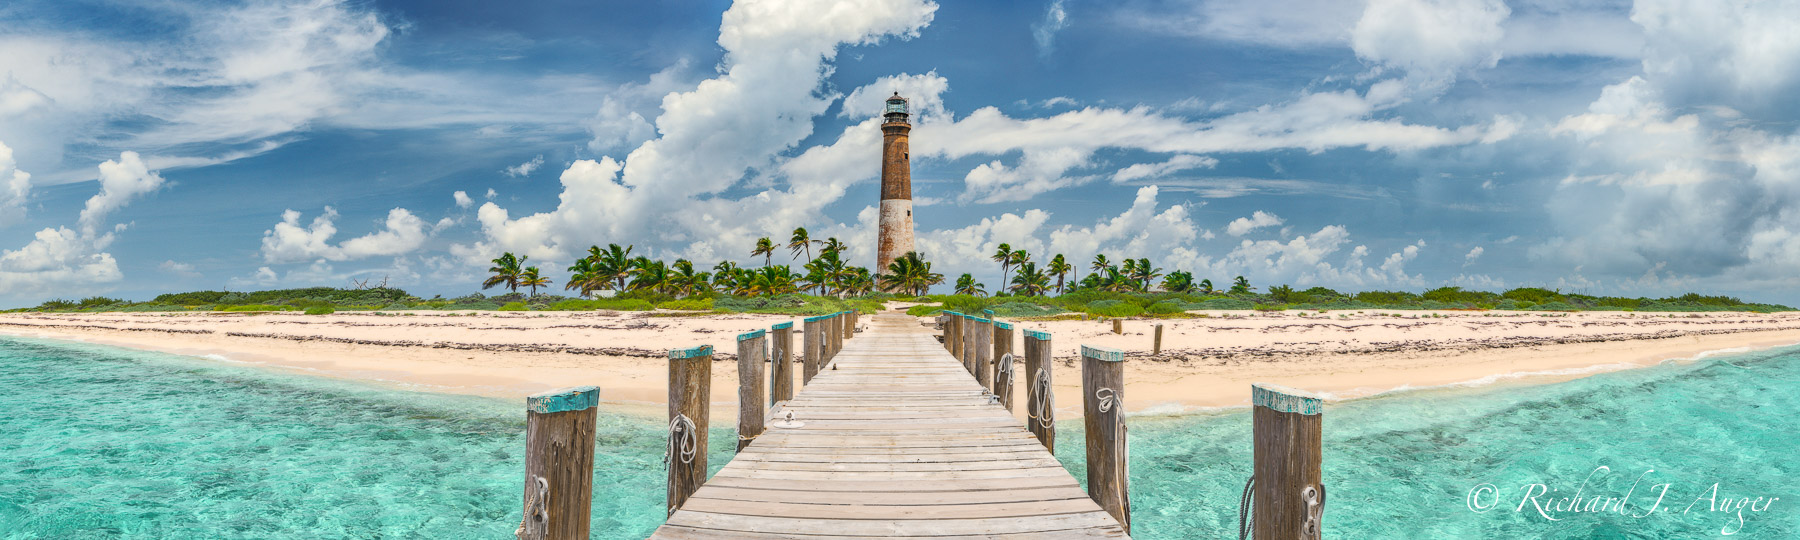 Loggerhead Key, Lighthouse, Dry Tortugas, Dock, Caribbean, Palm Trees